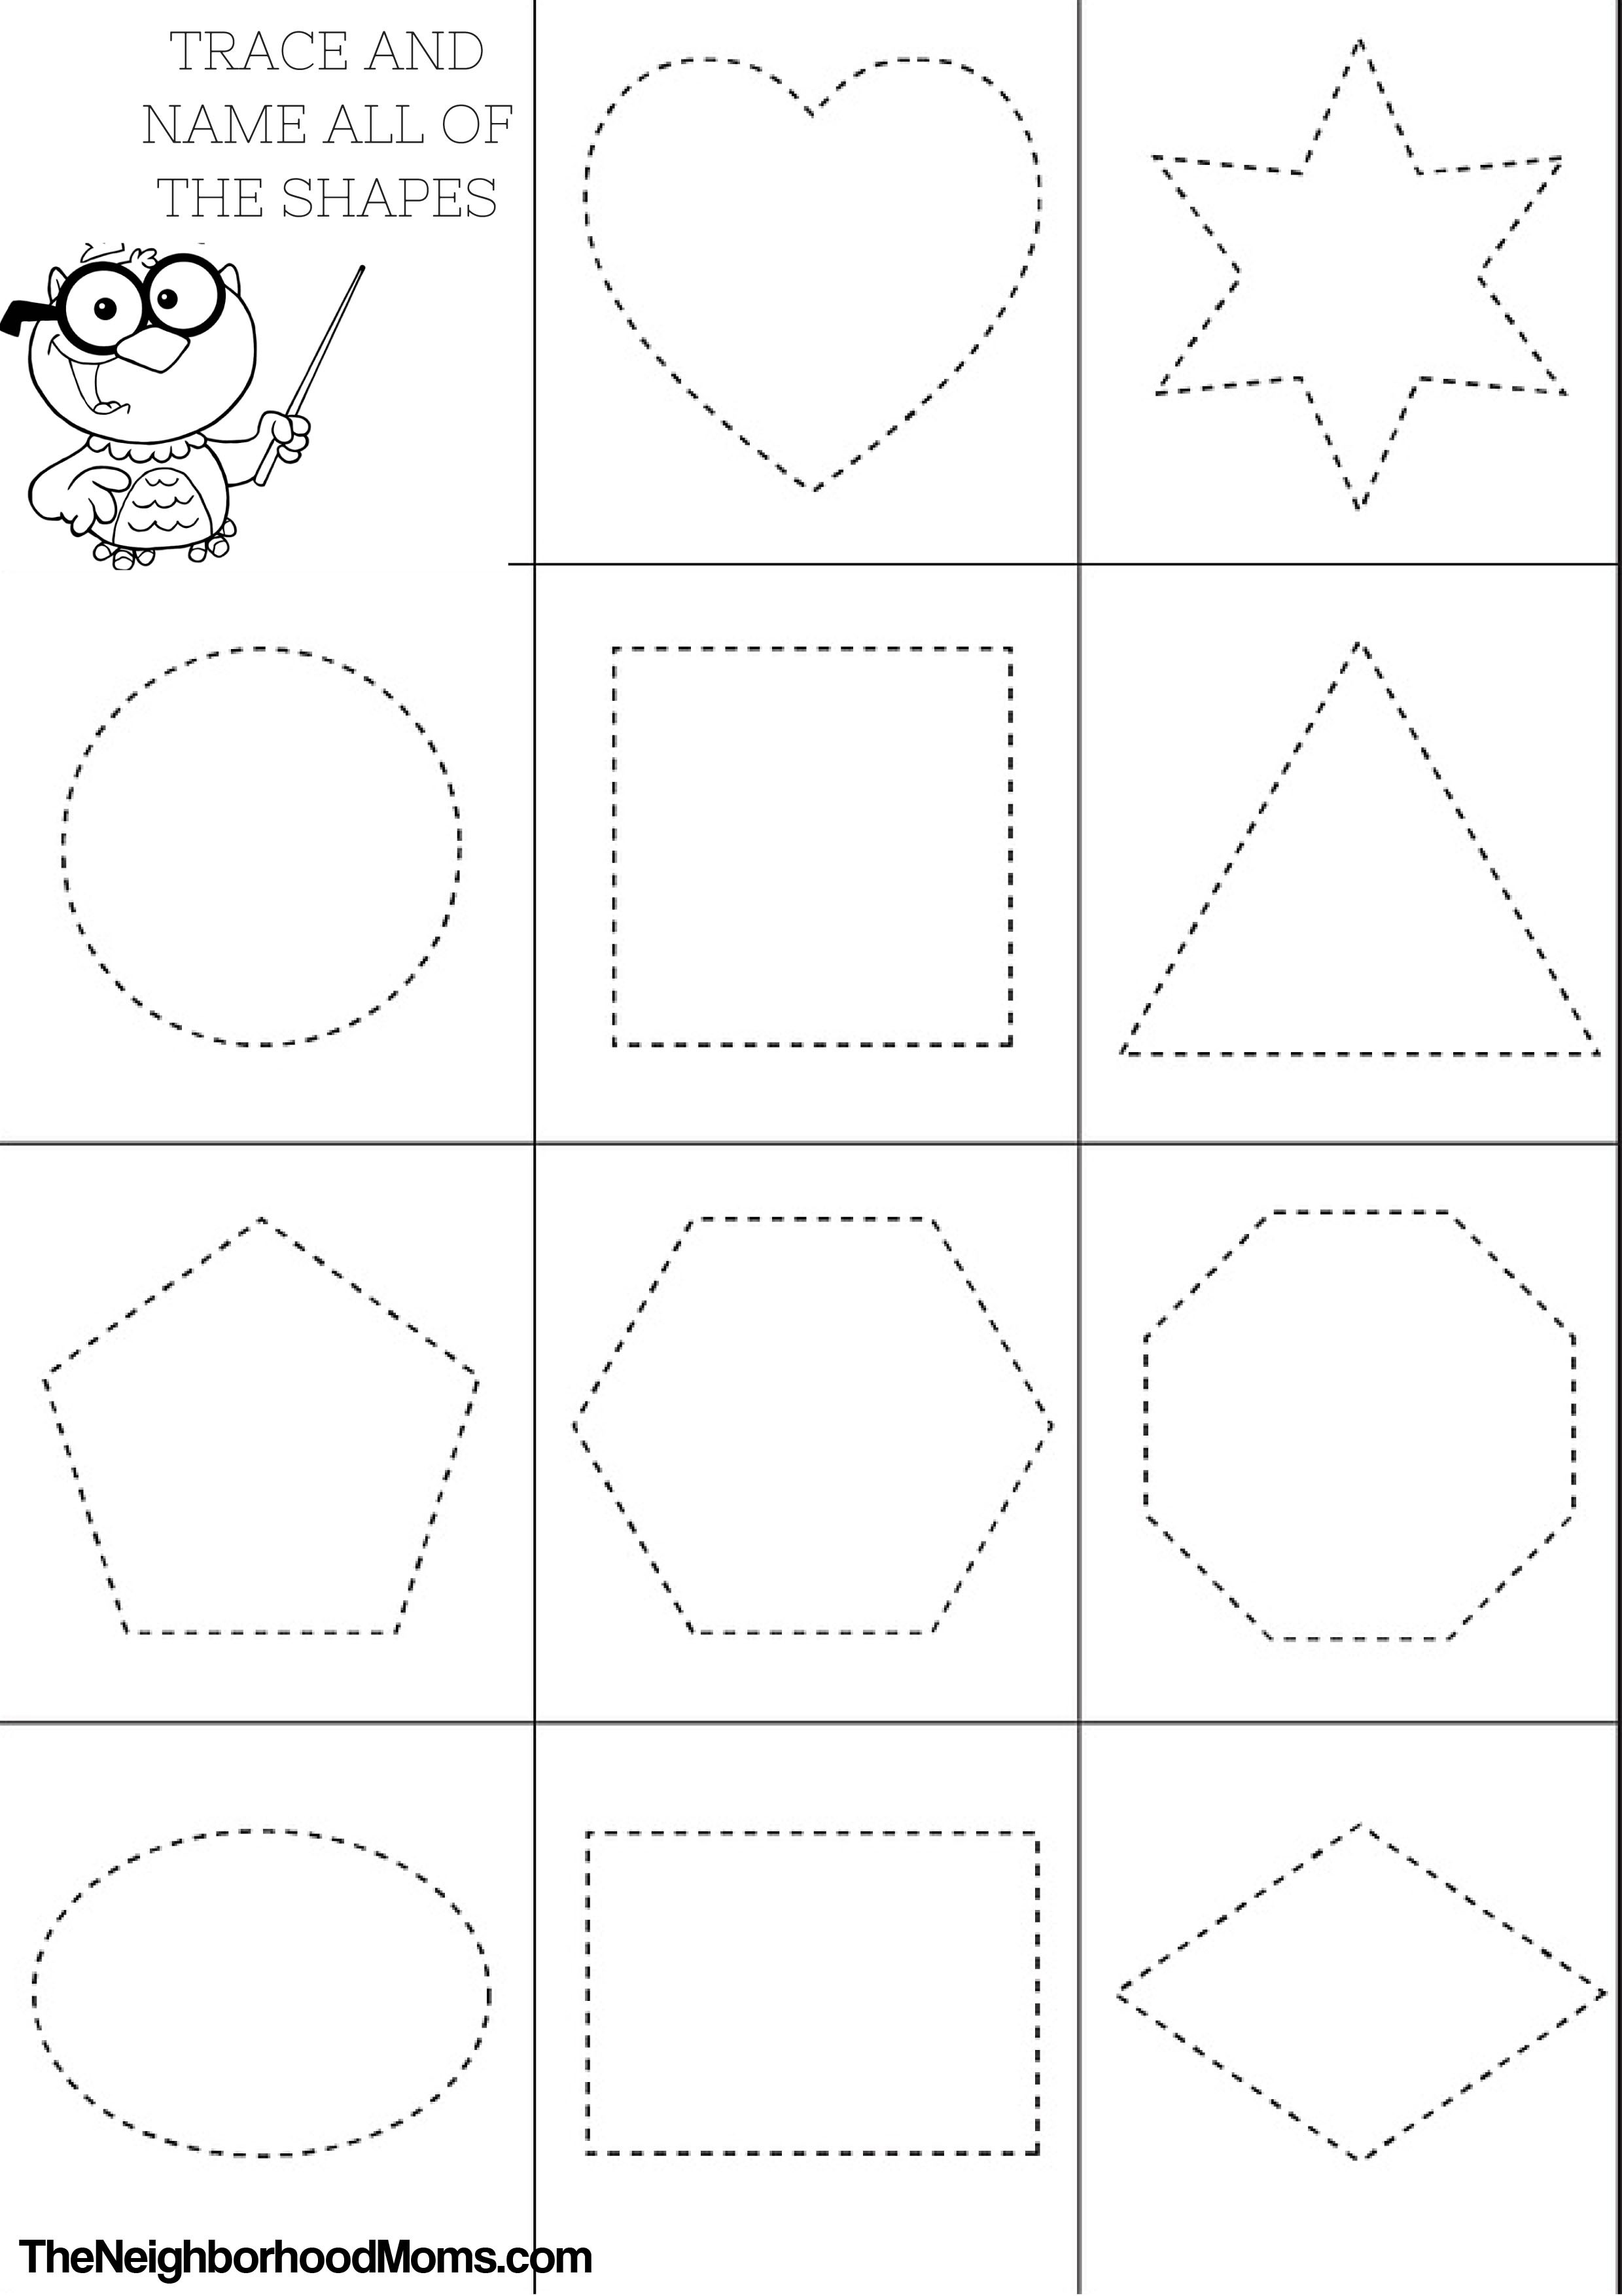 Best ideas about Coloring Pages For Kids Shapes . Save or Pin Shapes Coloring Pages Printable The Neighborhood Moms Now.